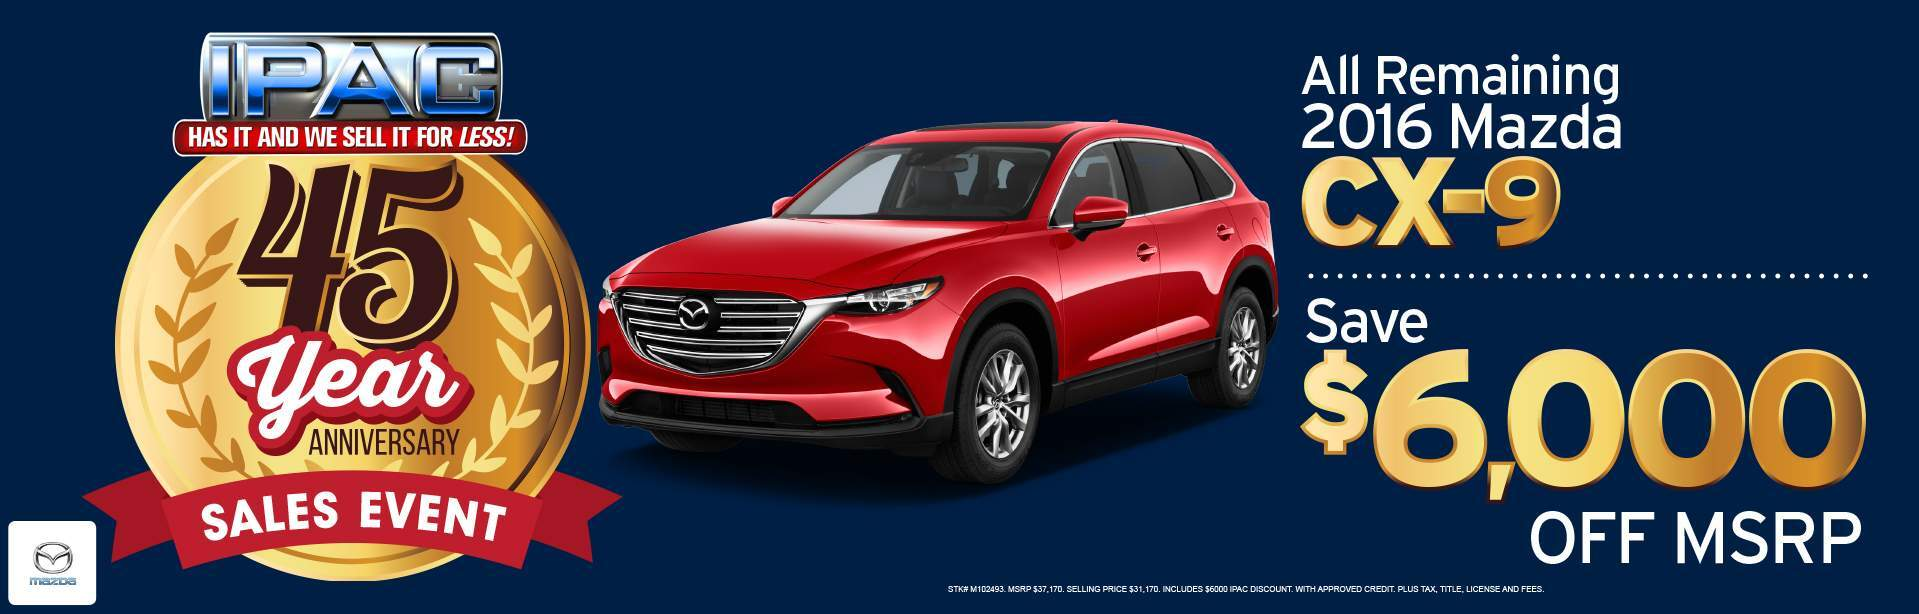 Ingram Park Mazda >> Mazda Dealership San Antonio TX Used Cars Ingram Park Mazda